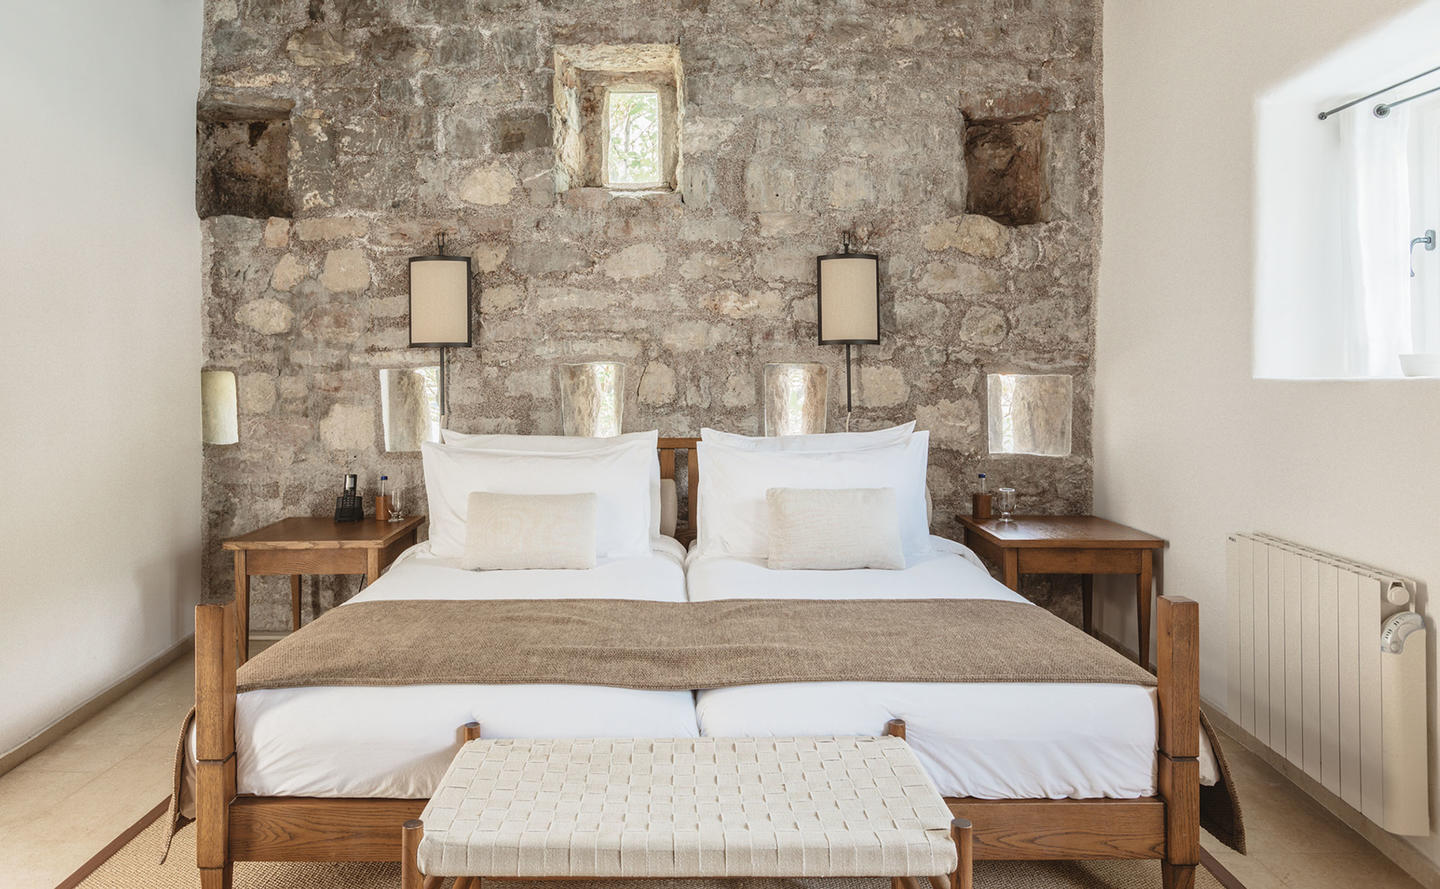 Bedroom, Three-Bedroom Village Cottage, Aman Sveti Stefan, Montenegro